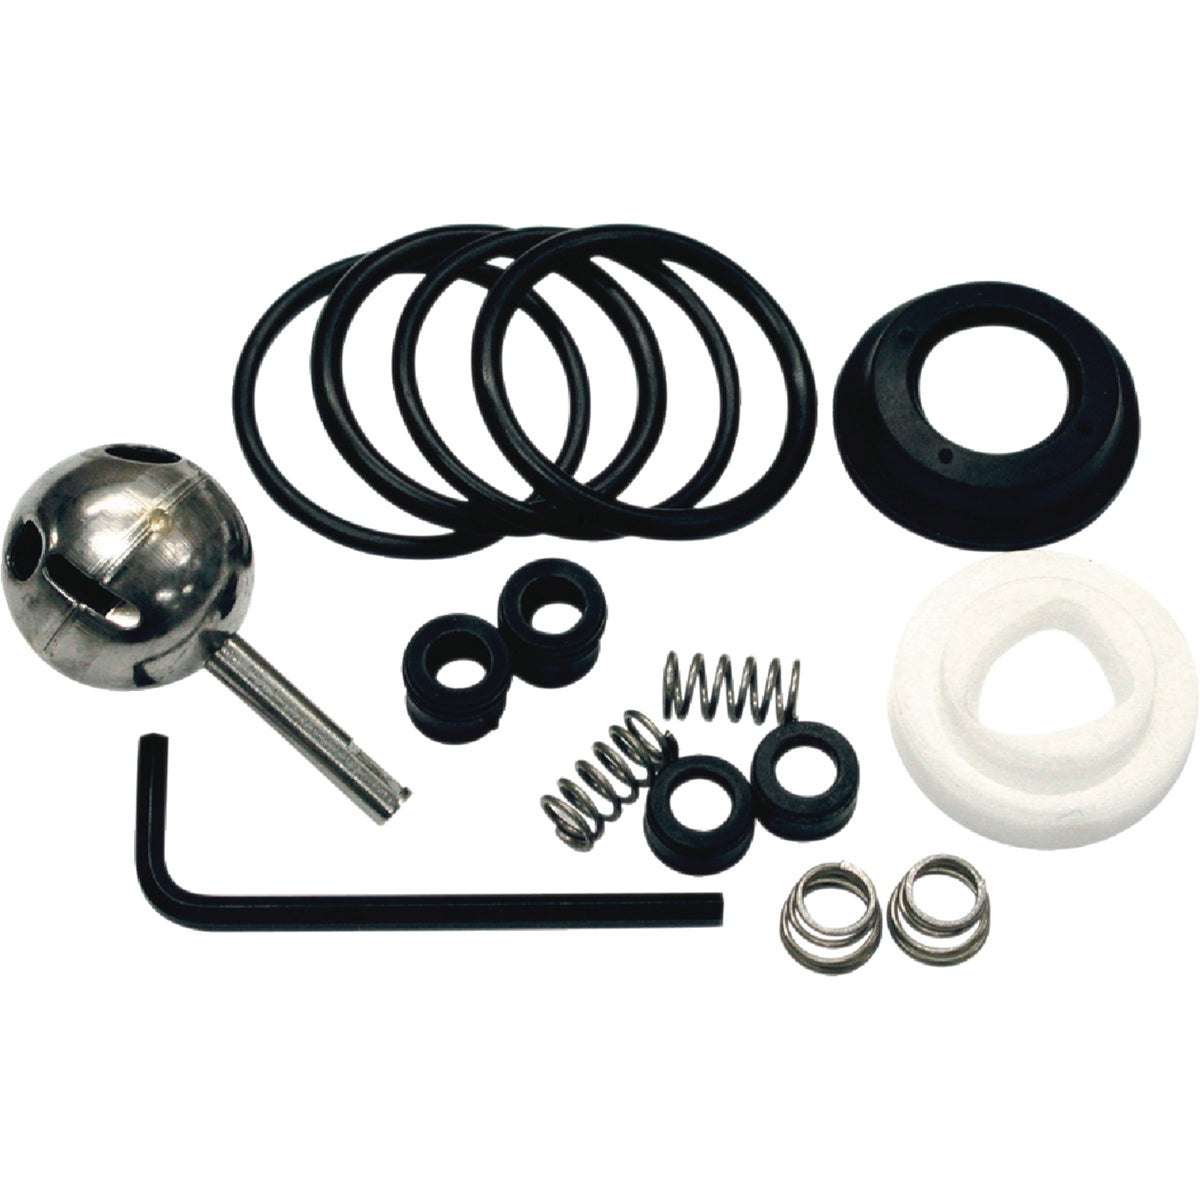 DELTA REPAIR KIT - 086970 by Danco Perfect Match